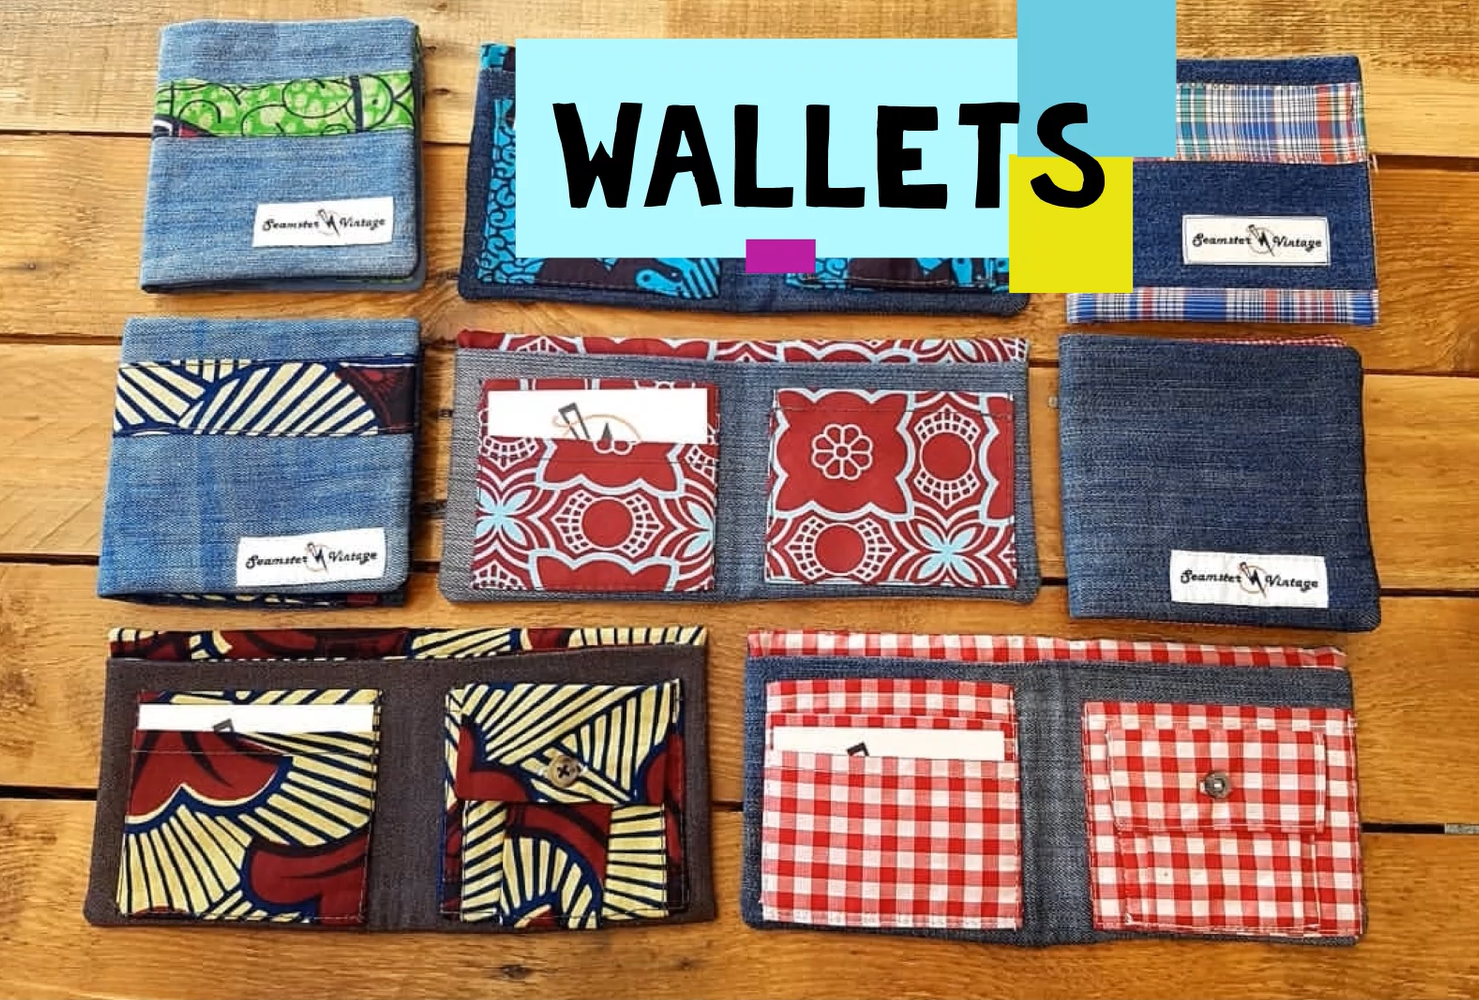 Seamster Handmade wallets are all created with reclaimed and reinforced denim with upcycled vintage details for a quality finish